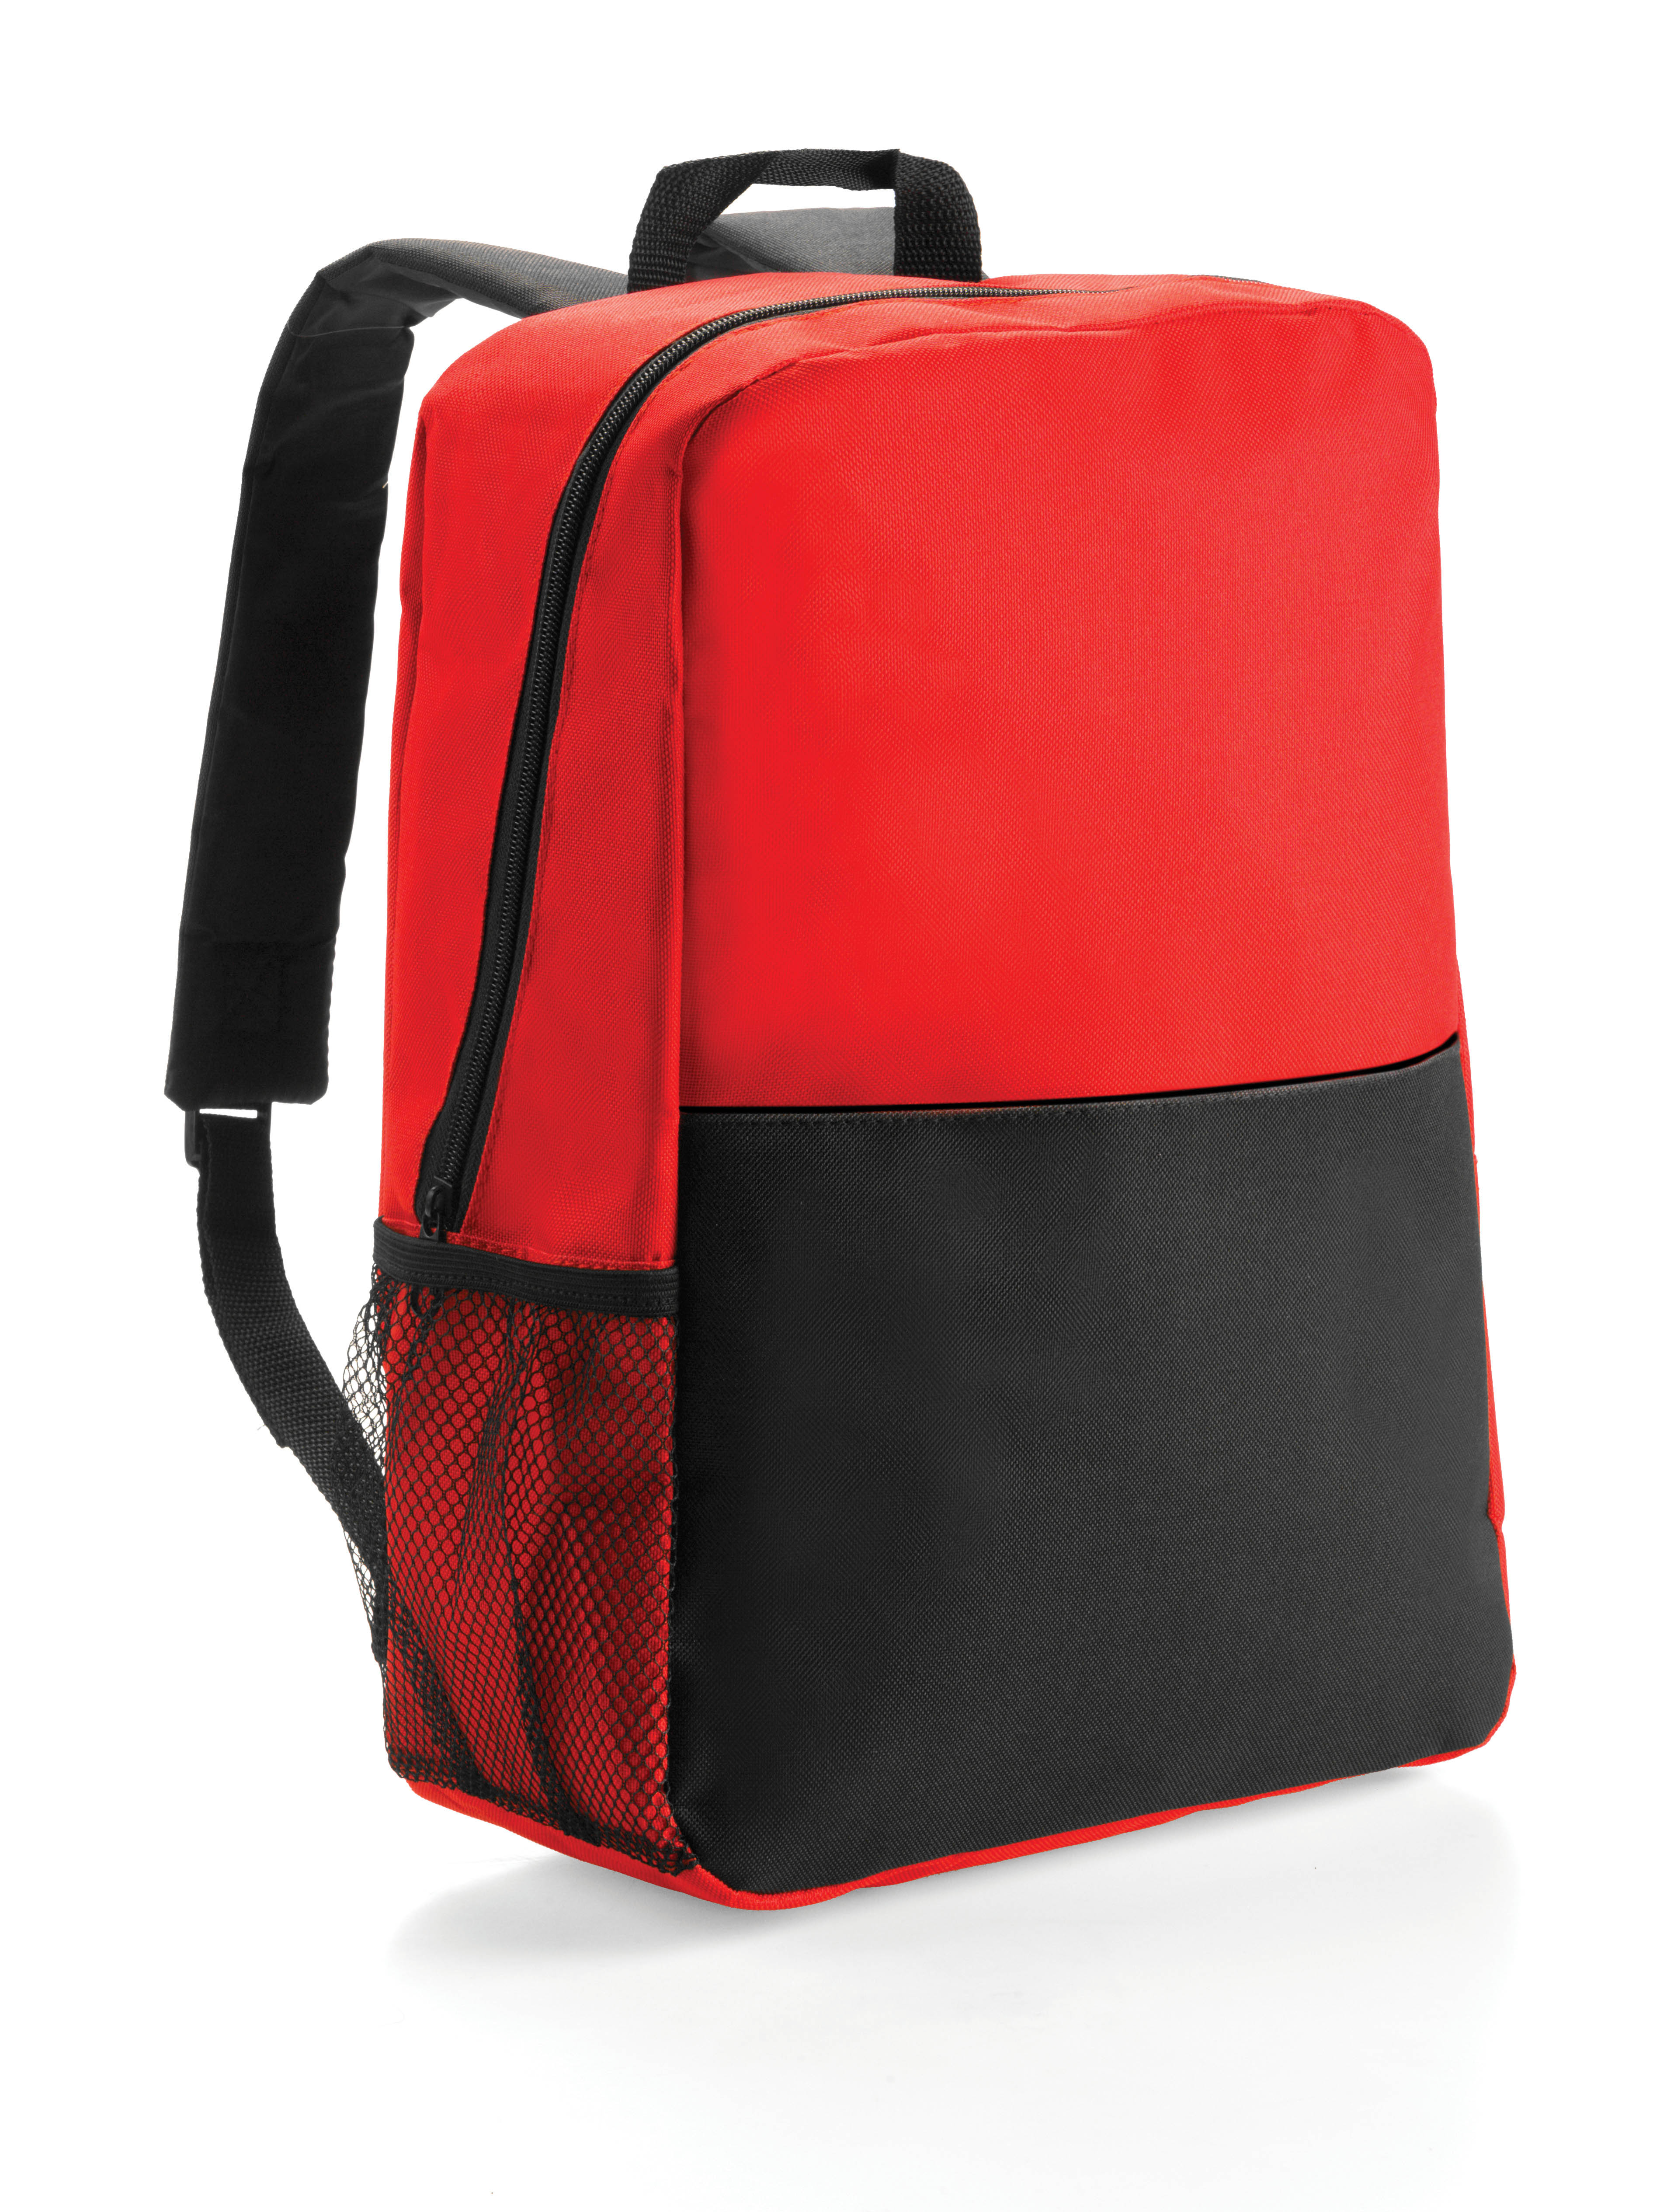 Service Backpack Product Image